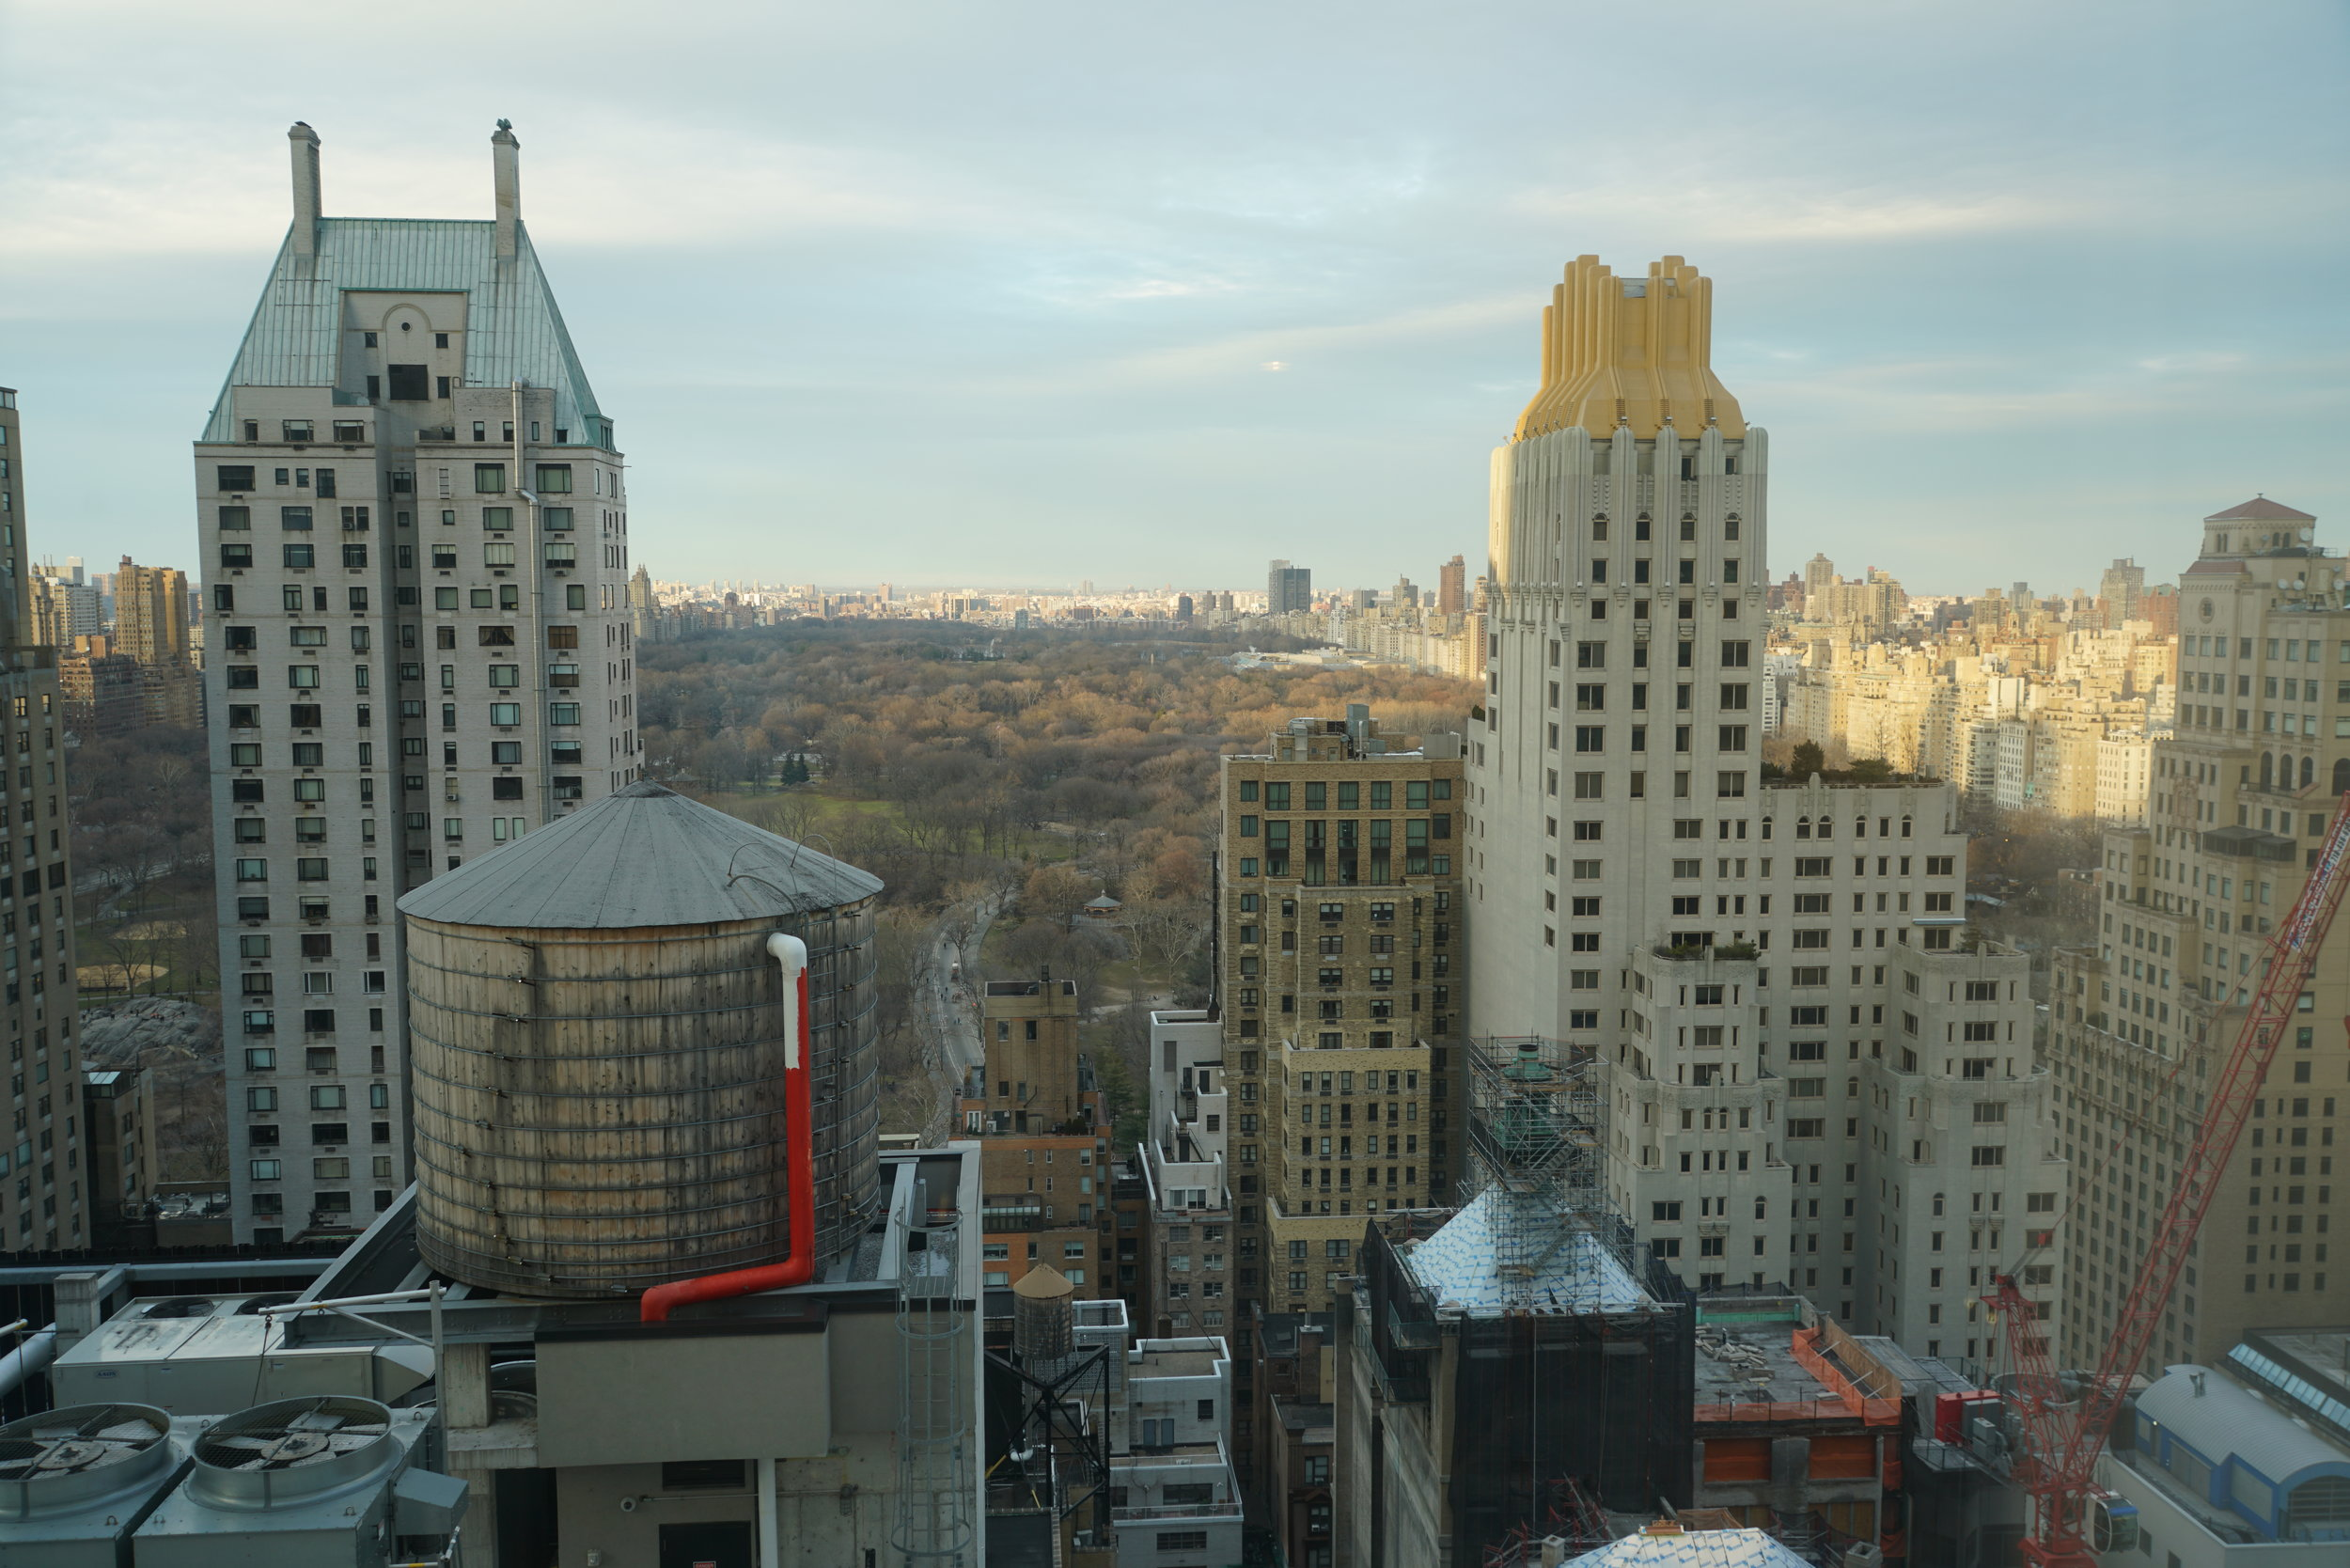 View of Central Park from our hotel